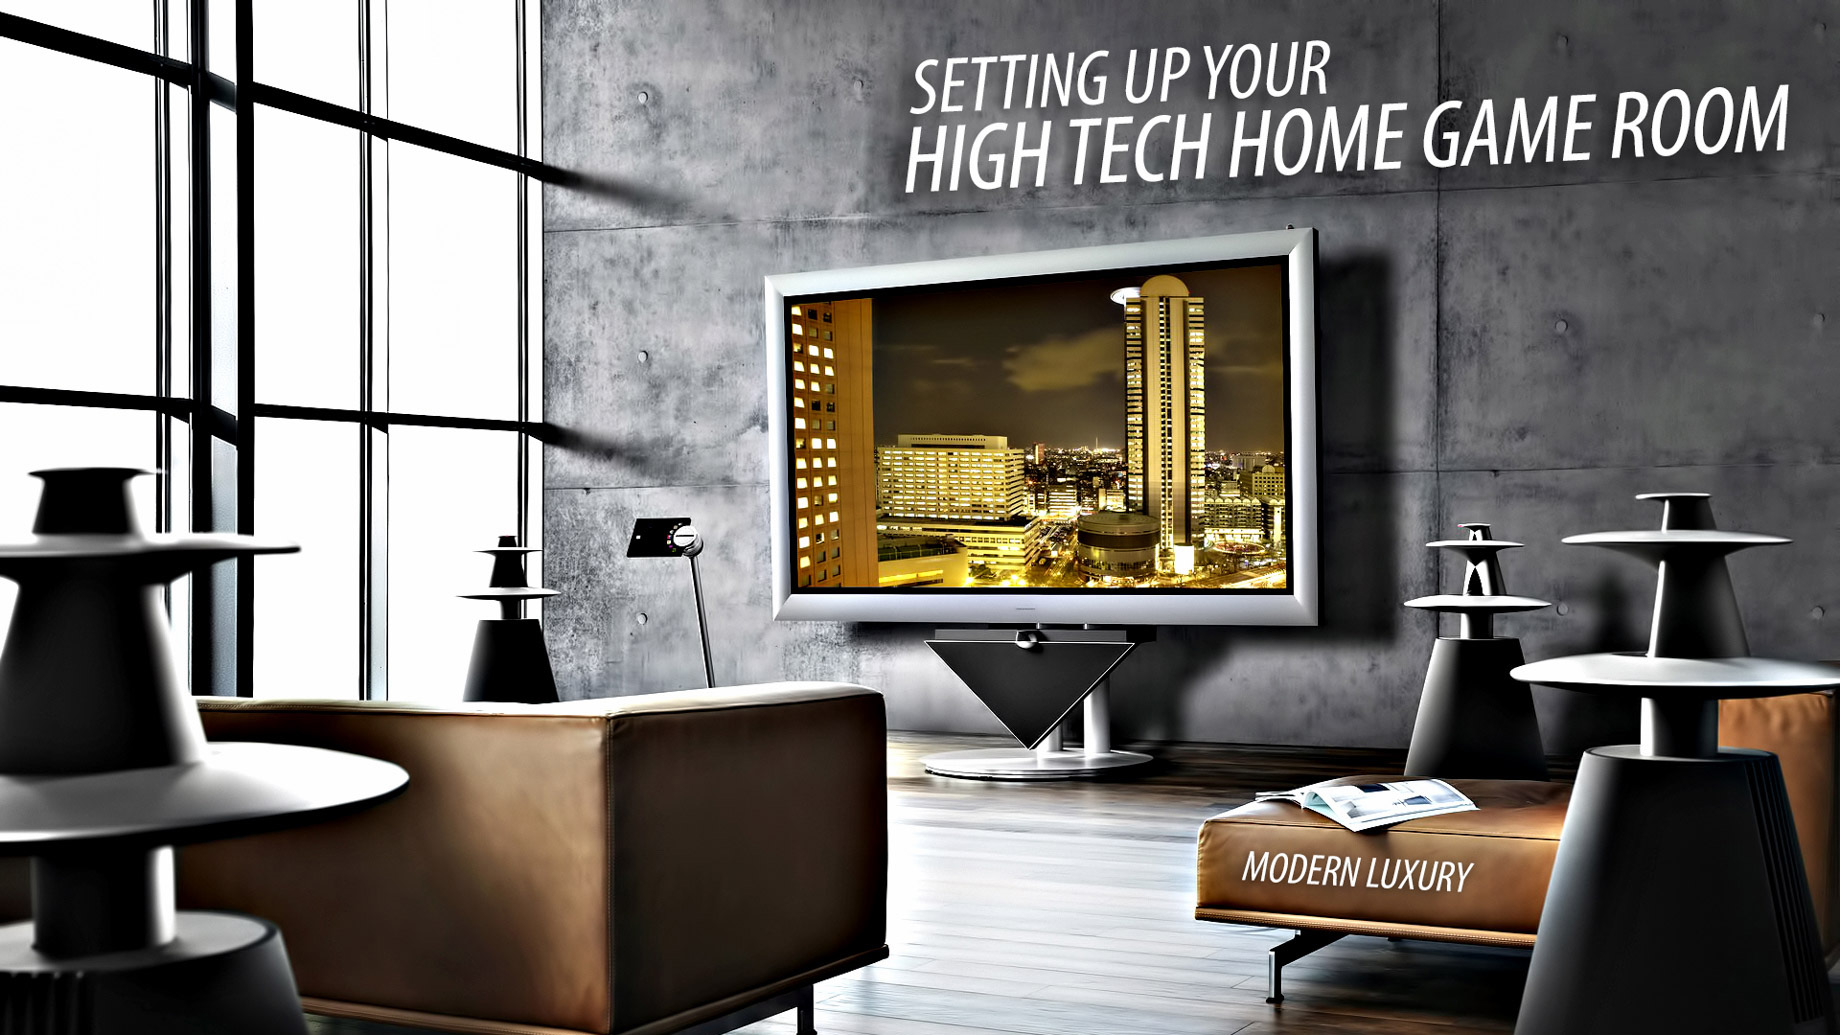 Living in Modern Luxury – Setting Up Your High-Tech Home Game Room